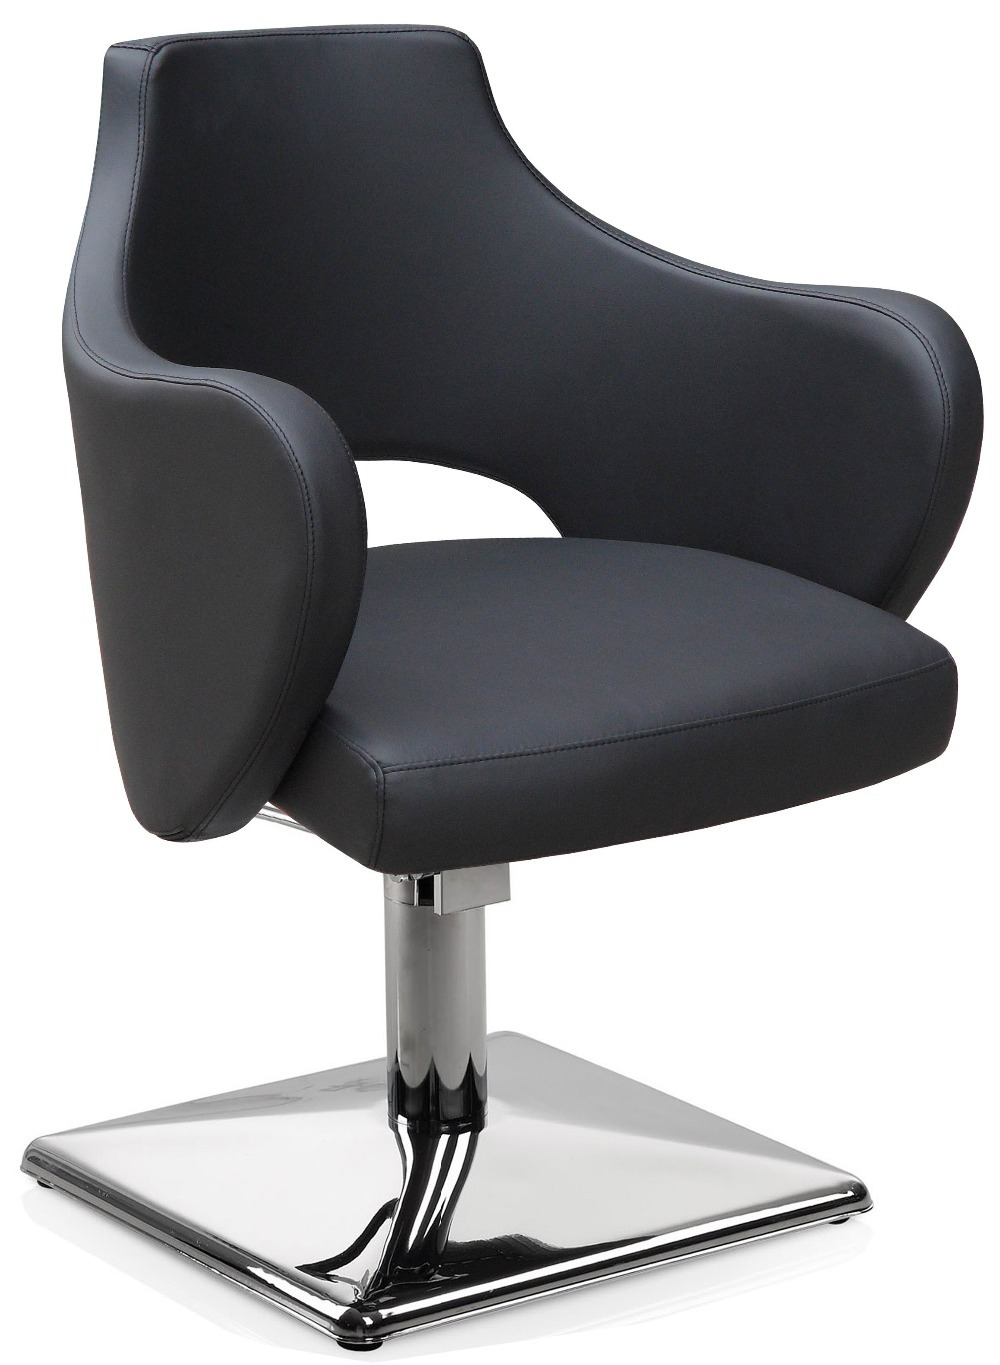 Portable salon chair pictures to pin on pinterest pinsdaddy for Salon style chair